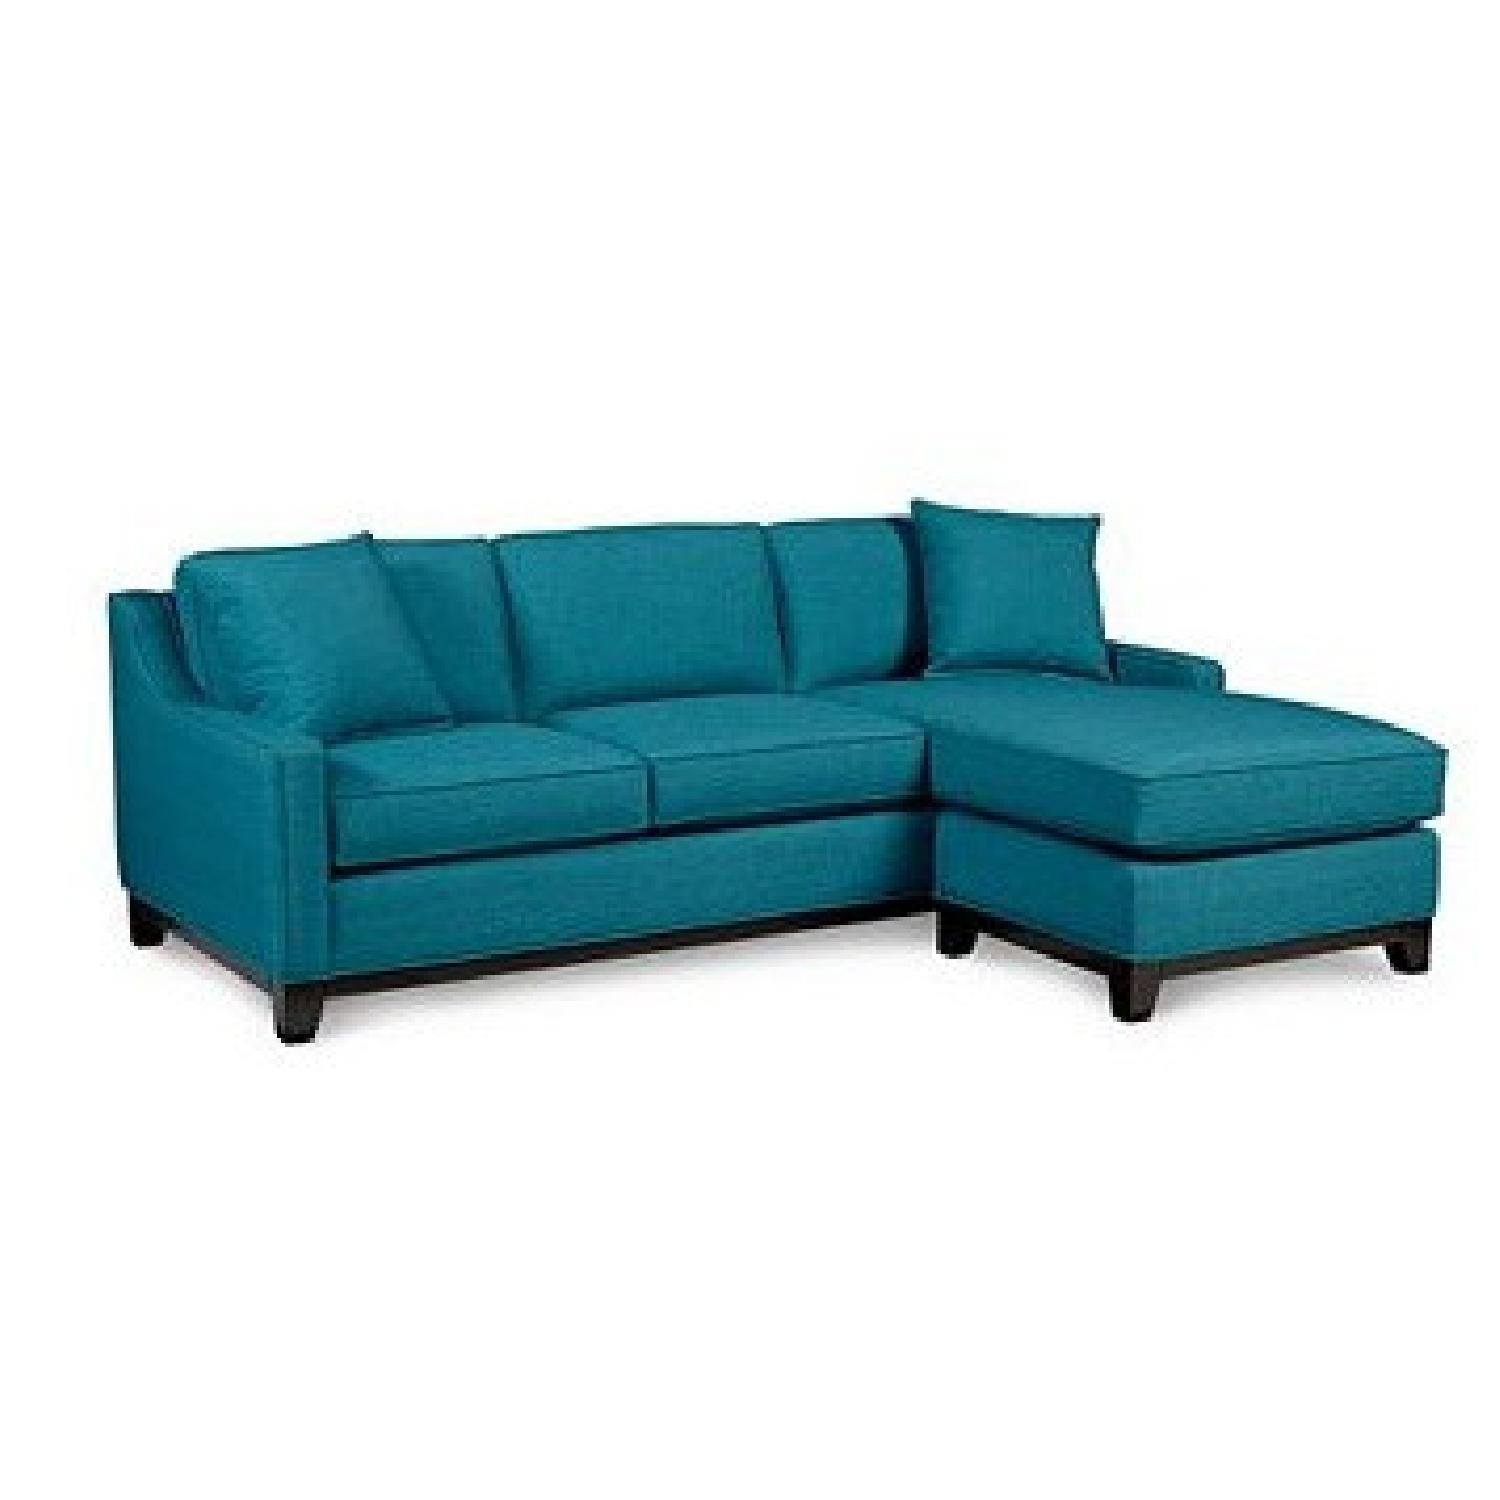 Macy's Keegan Peacock Blue Sectional Sofa w/ Pillows - image-0